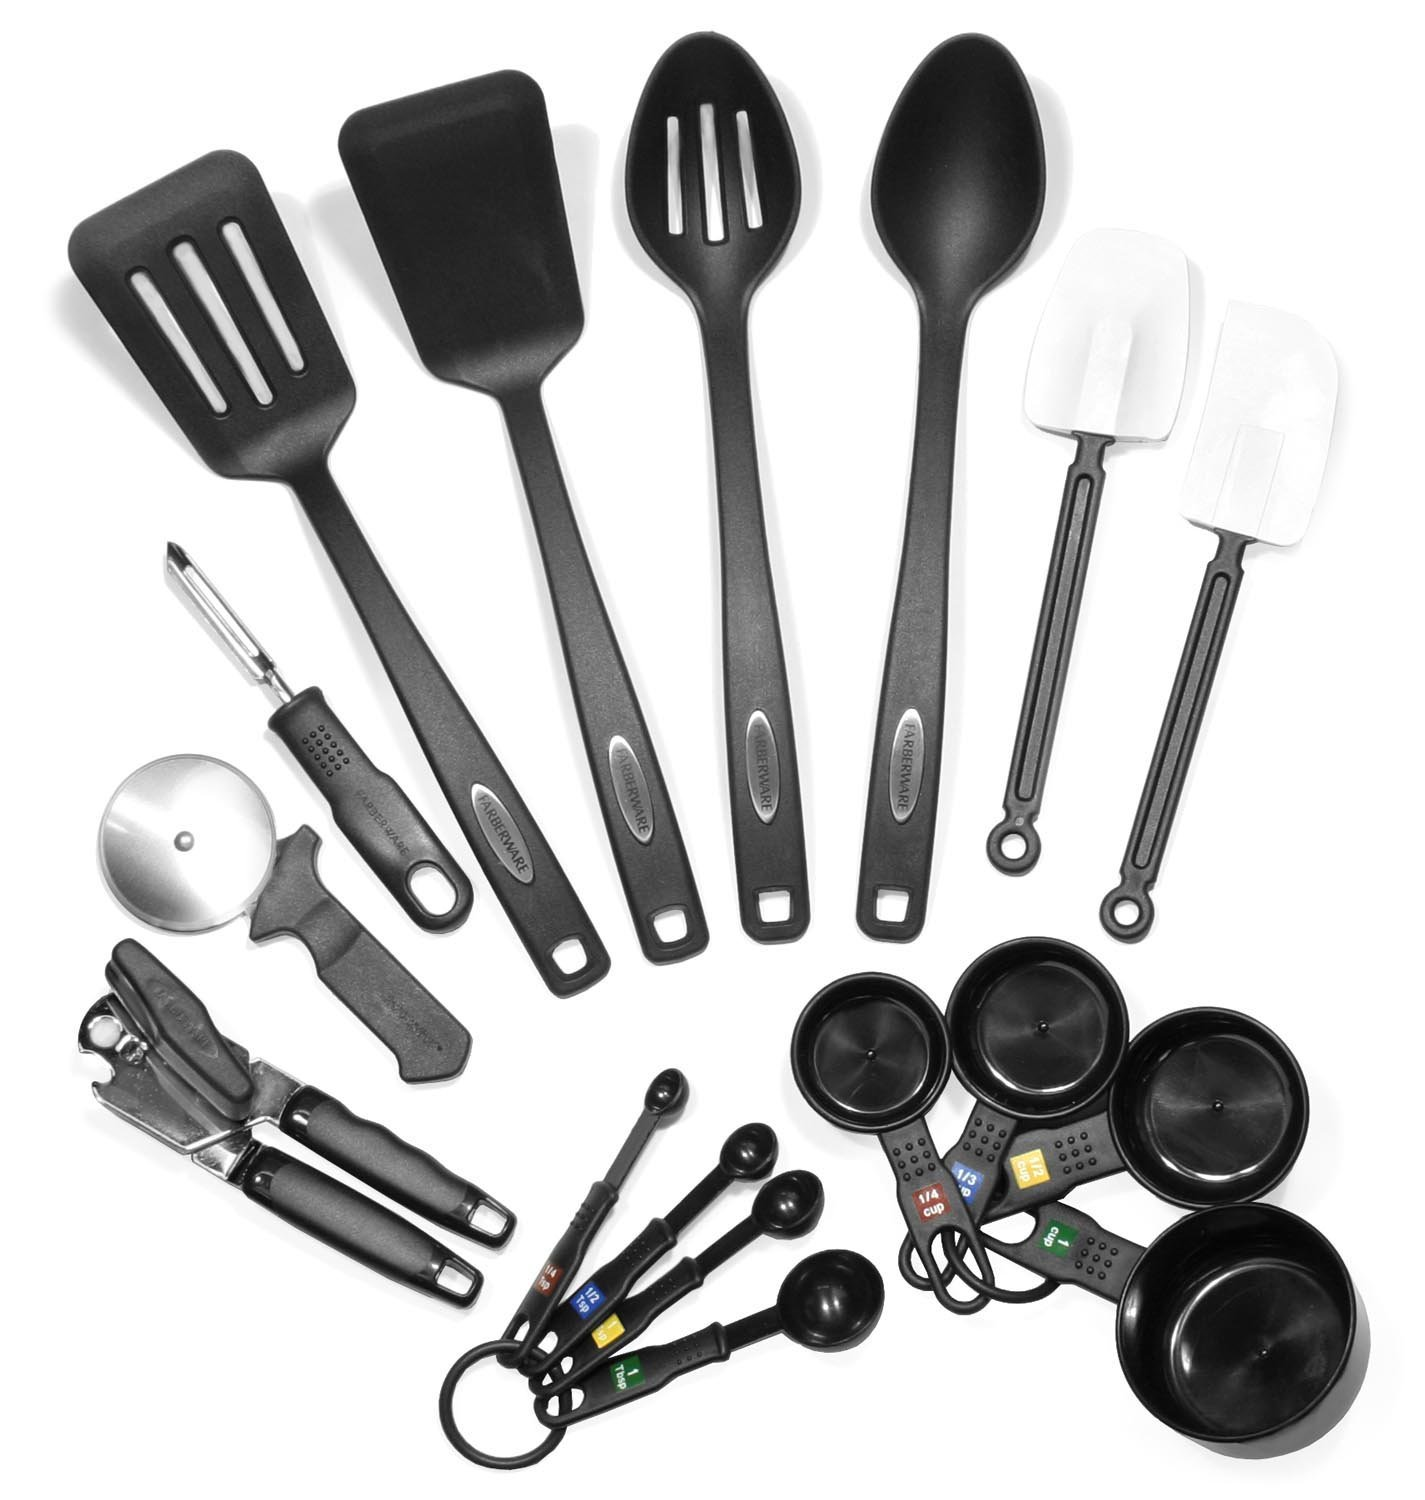 Farberware Classic 17 Piece Tool And Gadget Set